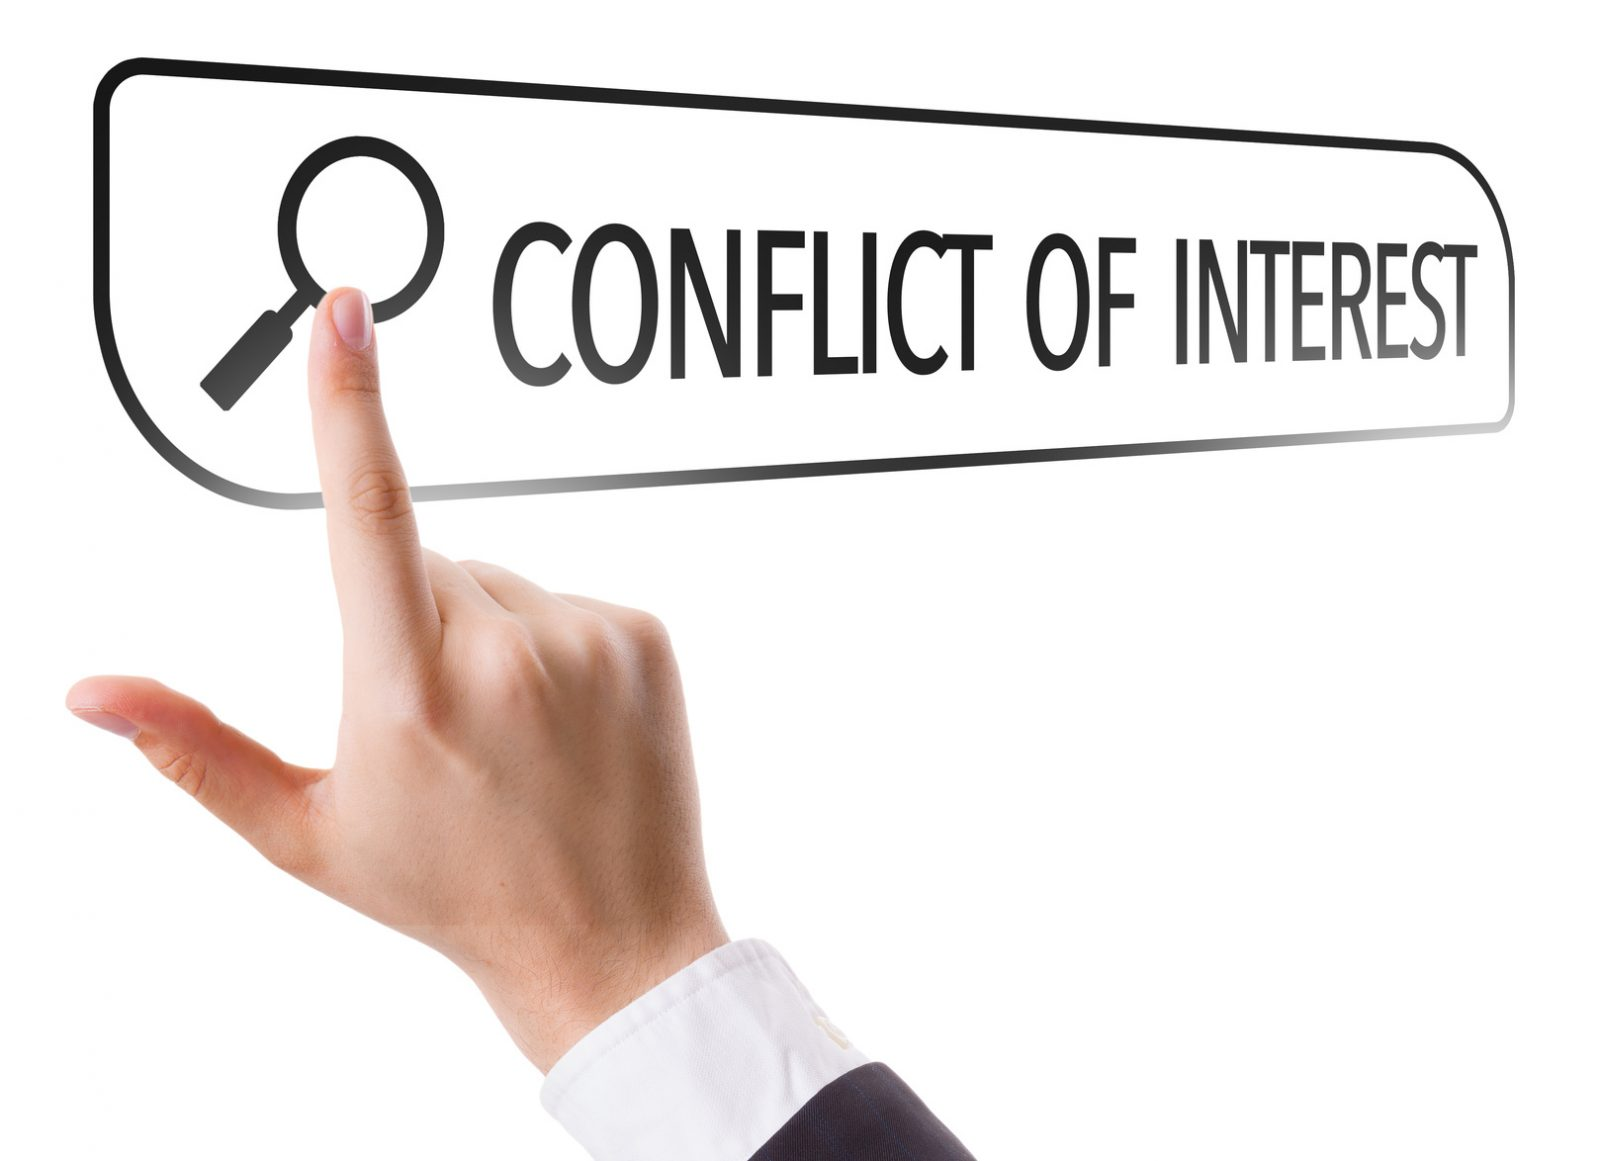 the importance of conflict The joint commission has issued a leadership standard that requires conflict management process to be available to administration, medical staff leadership and the governing board4 similar requirements have been added for physician leaders.